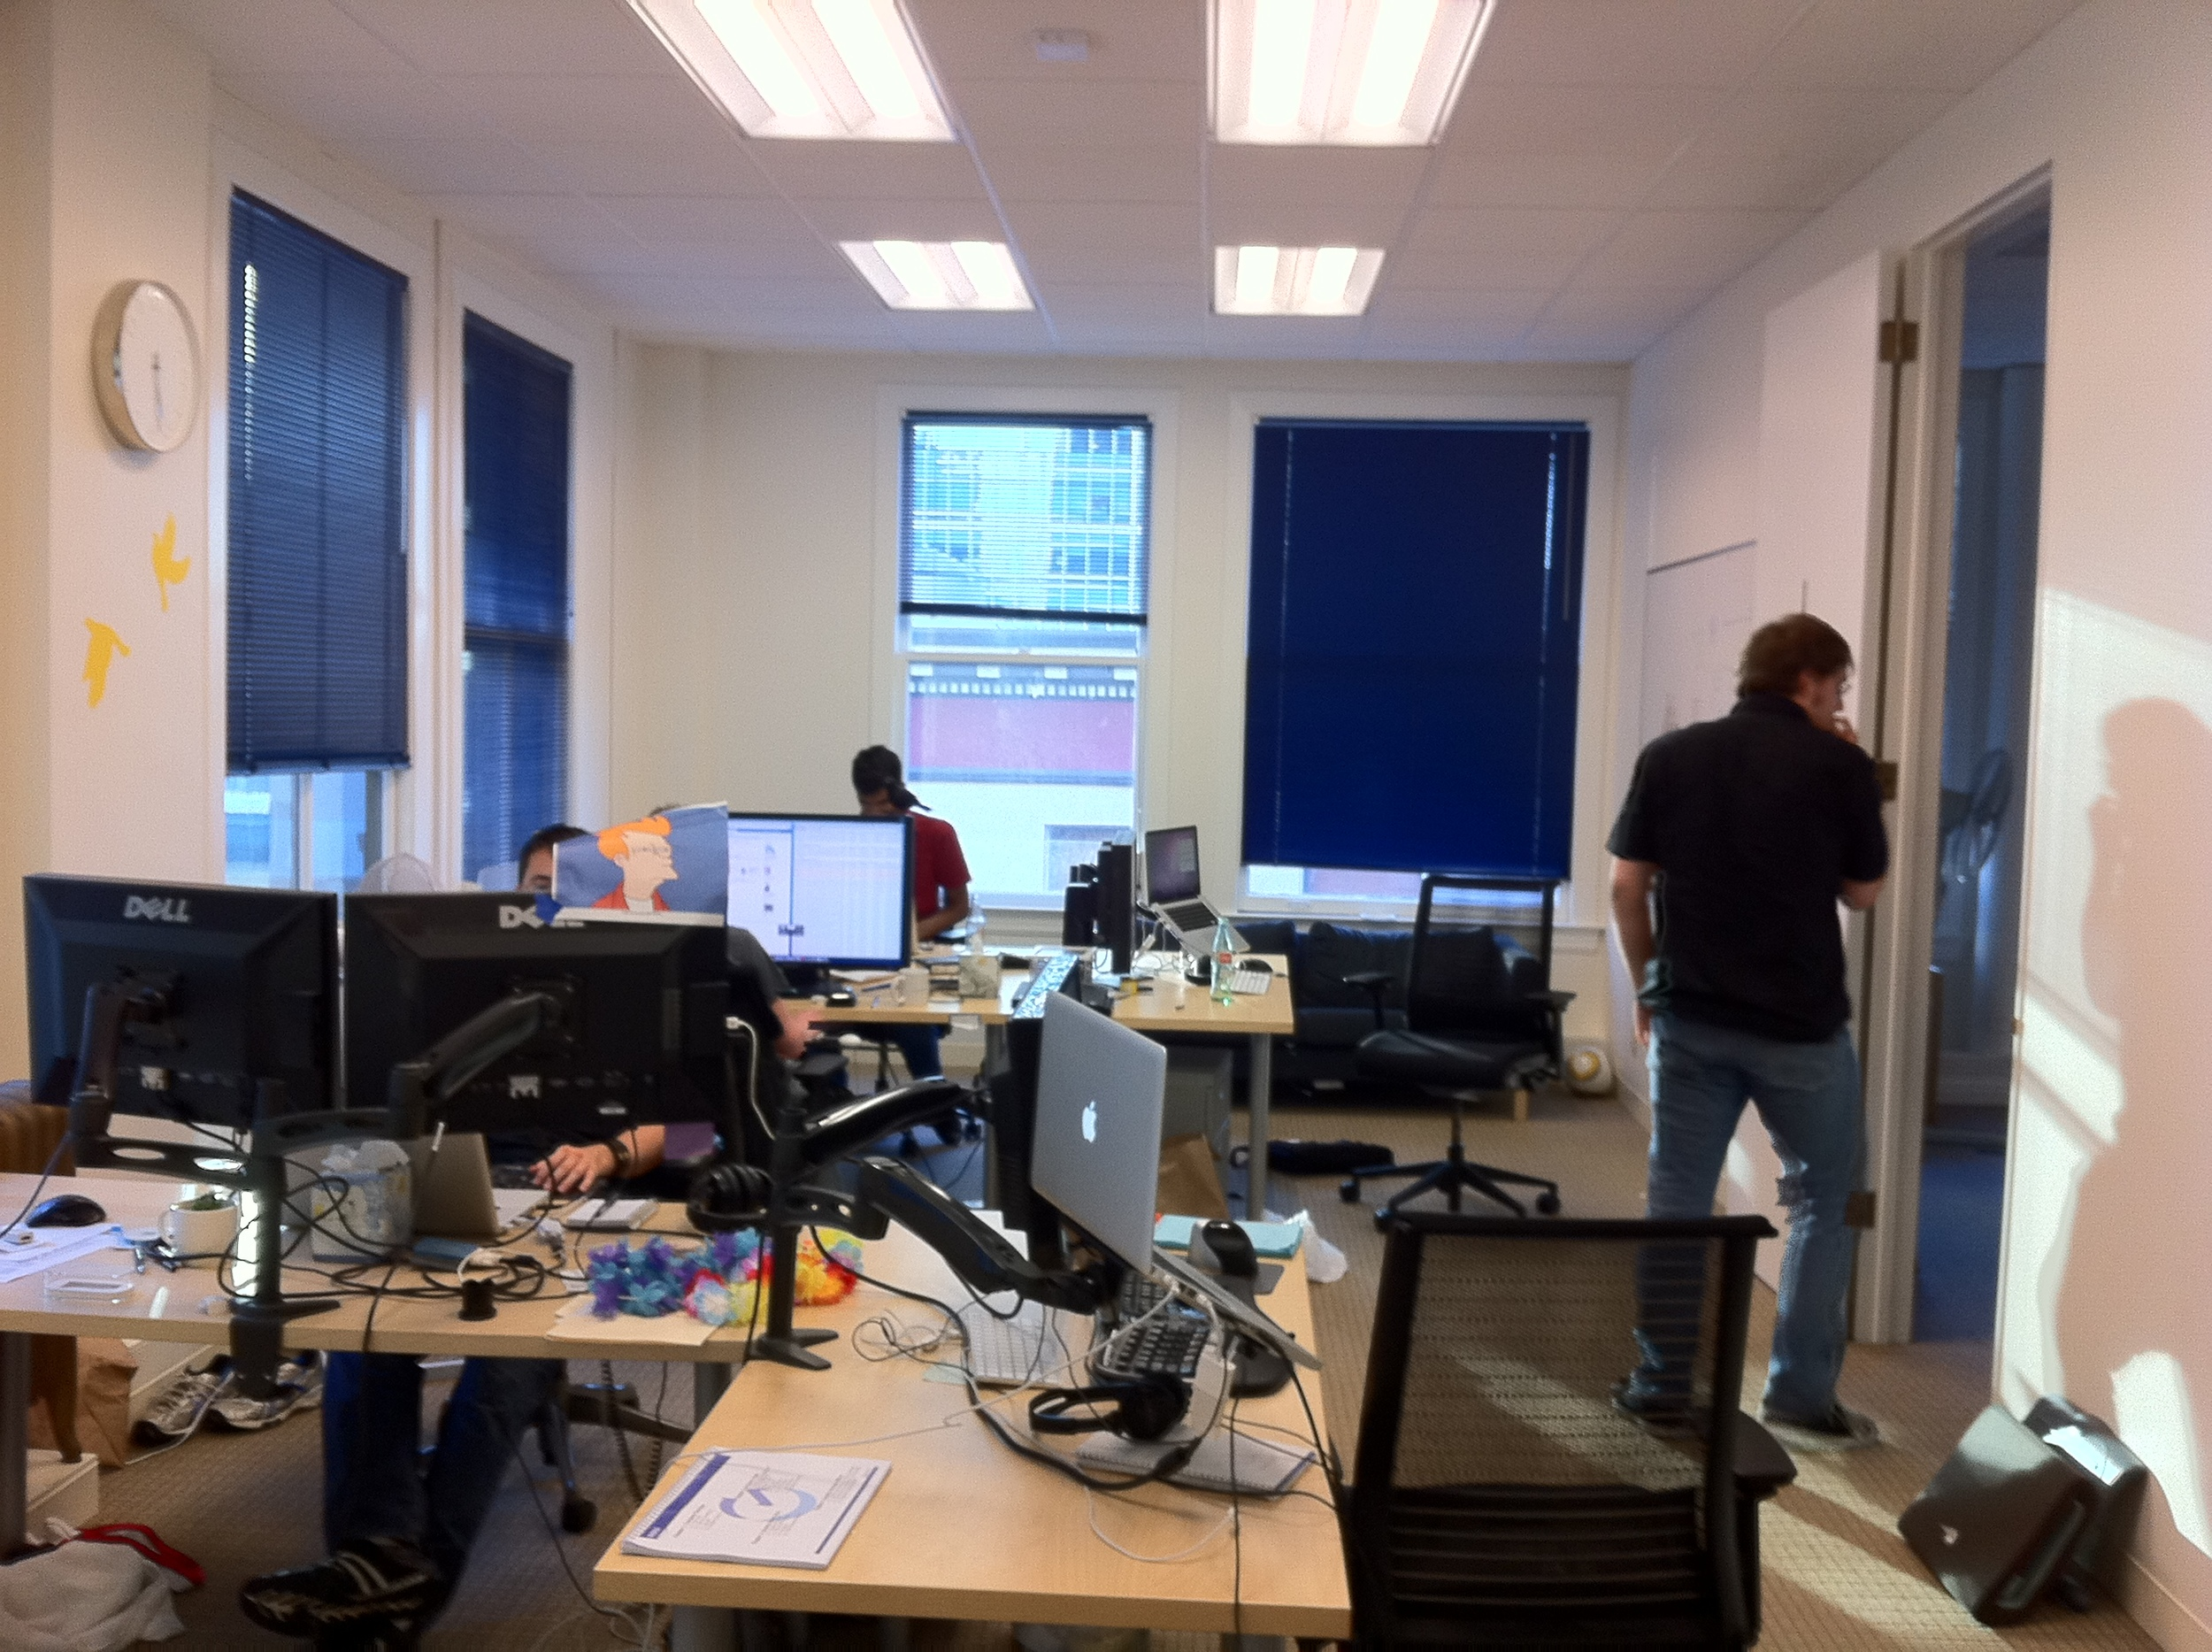 The programmer's room. My desk was just outside the door on the right.